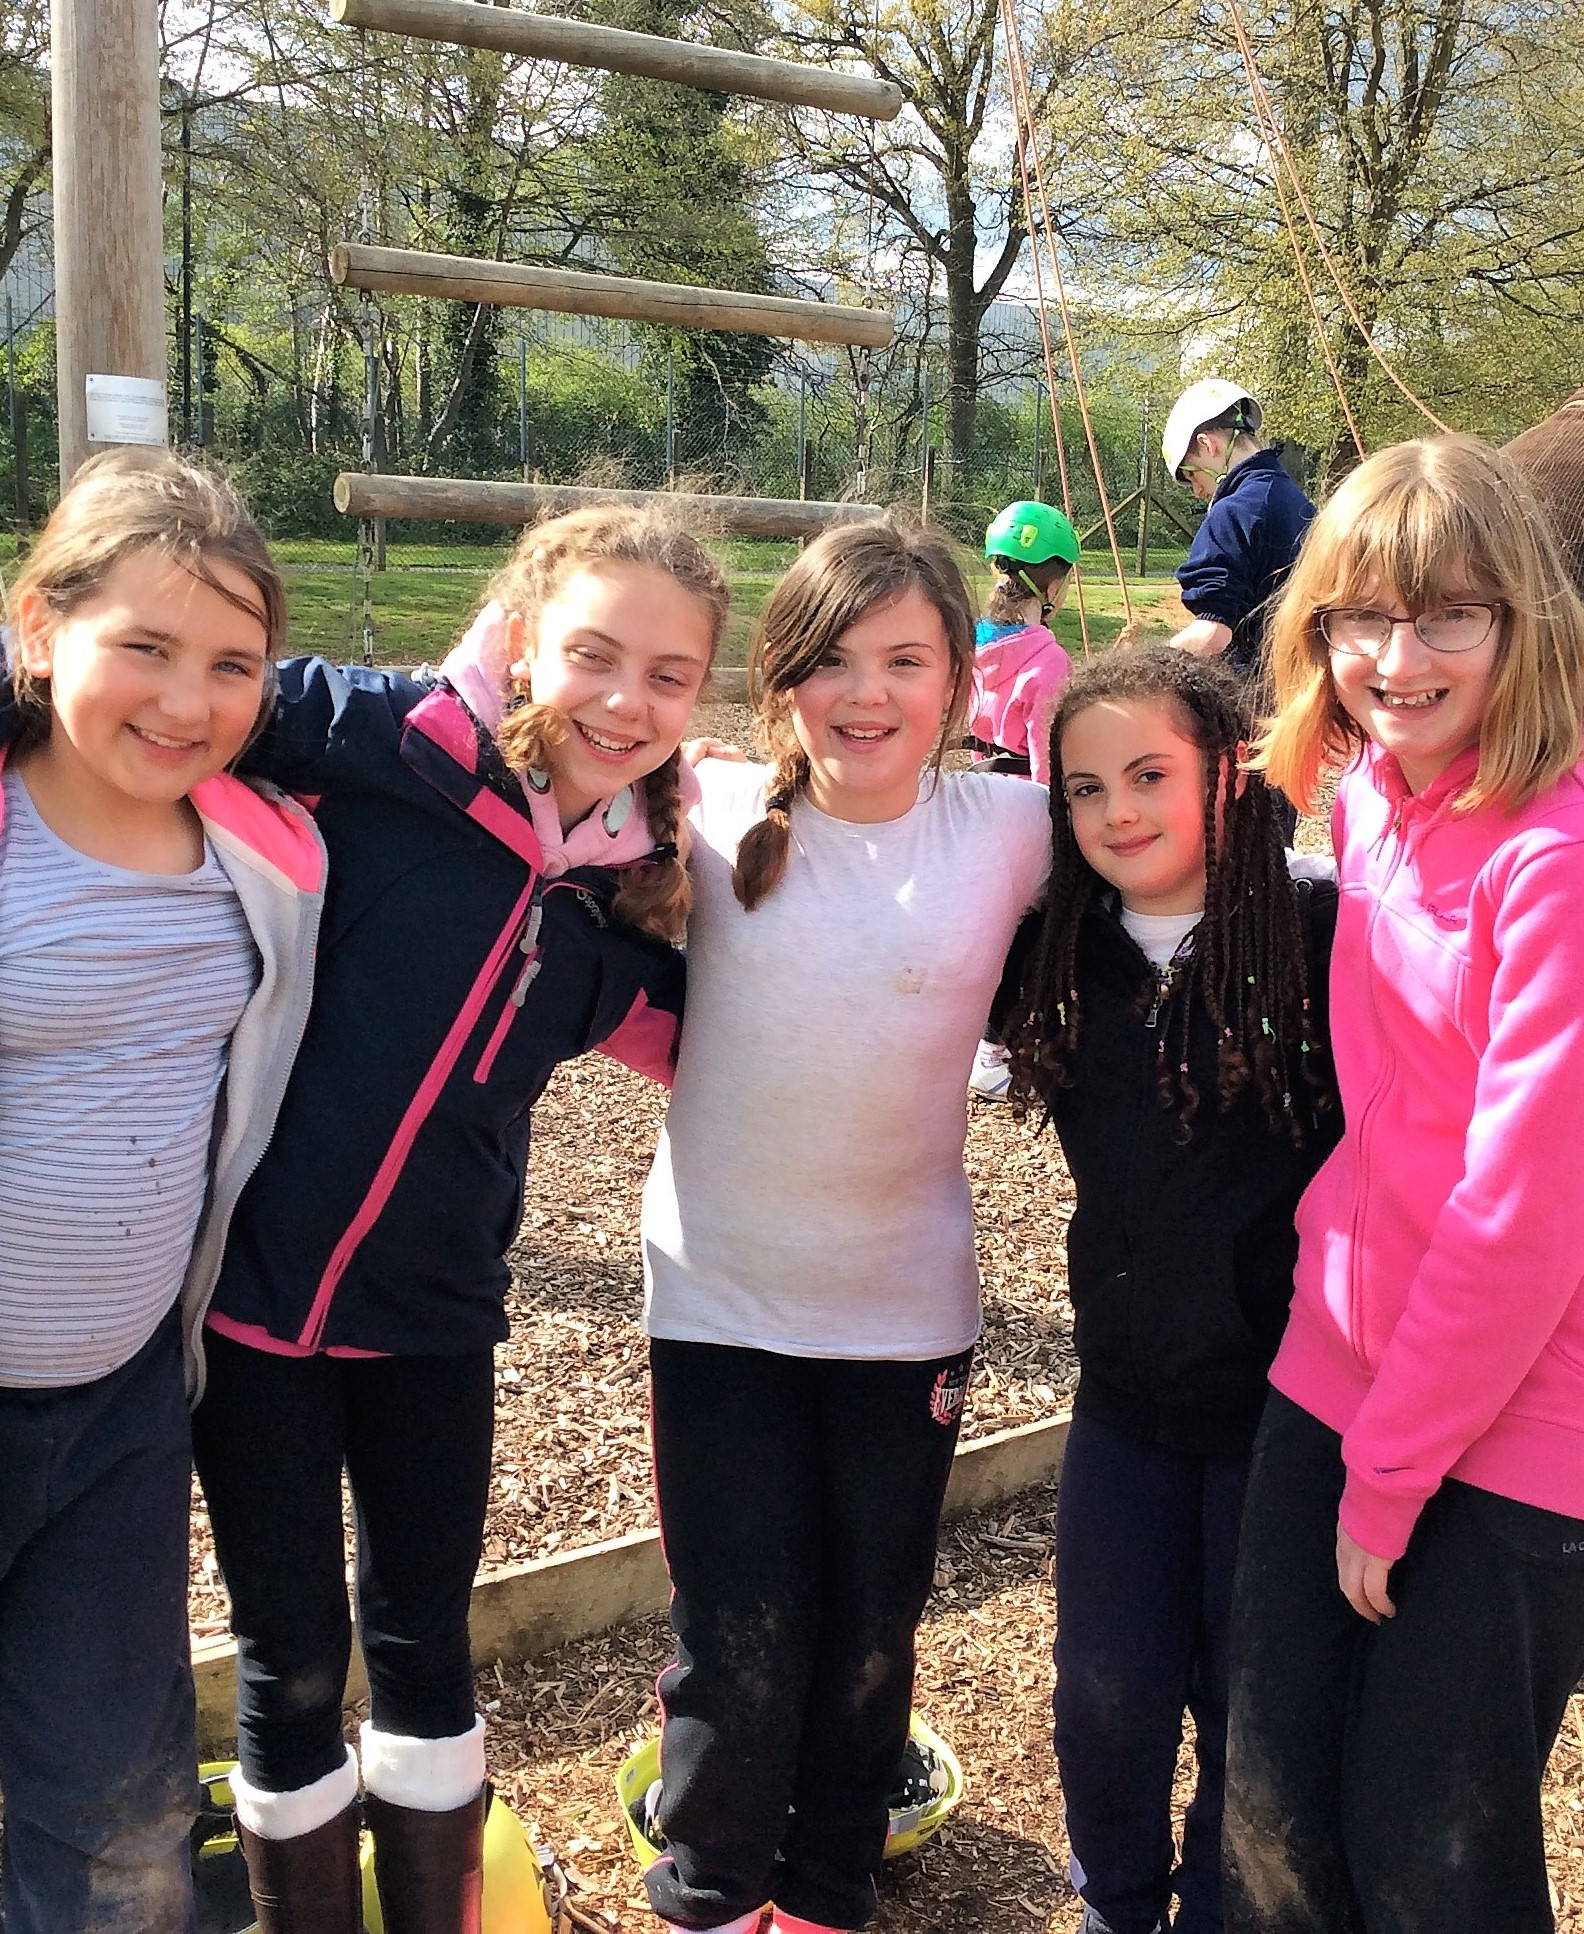 Nonington Church of England Primary School – An inclusive